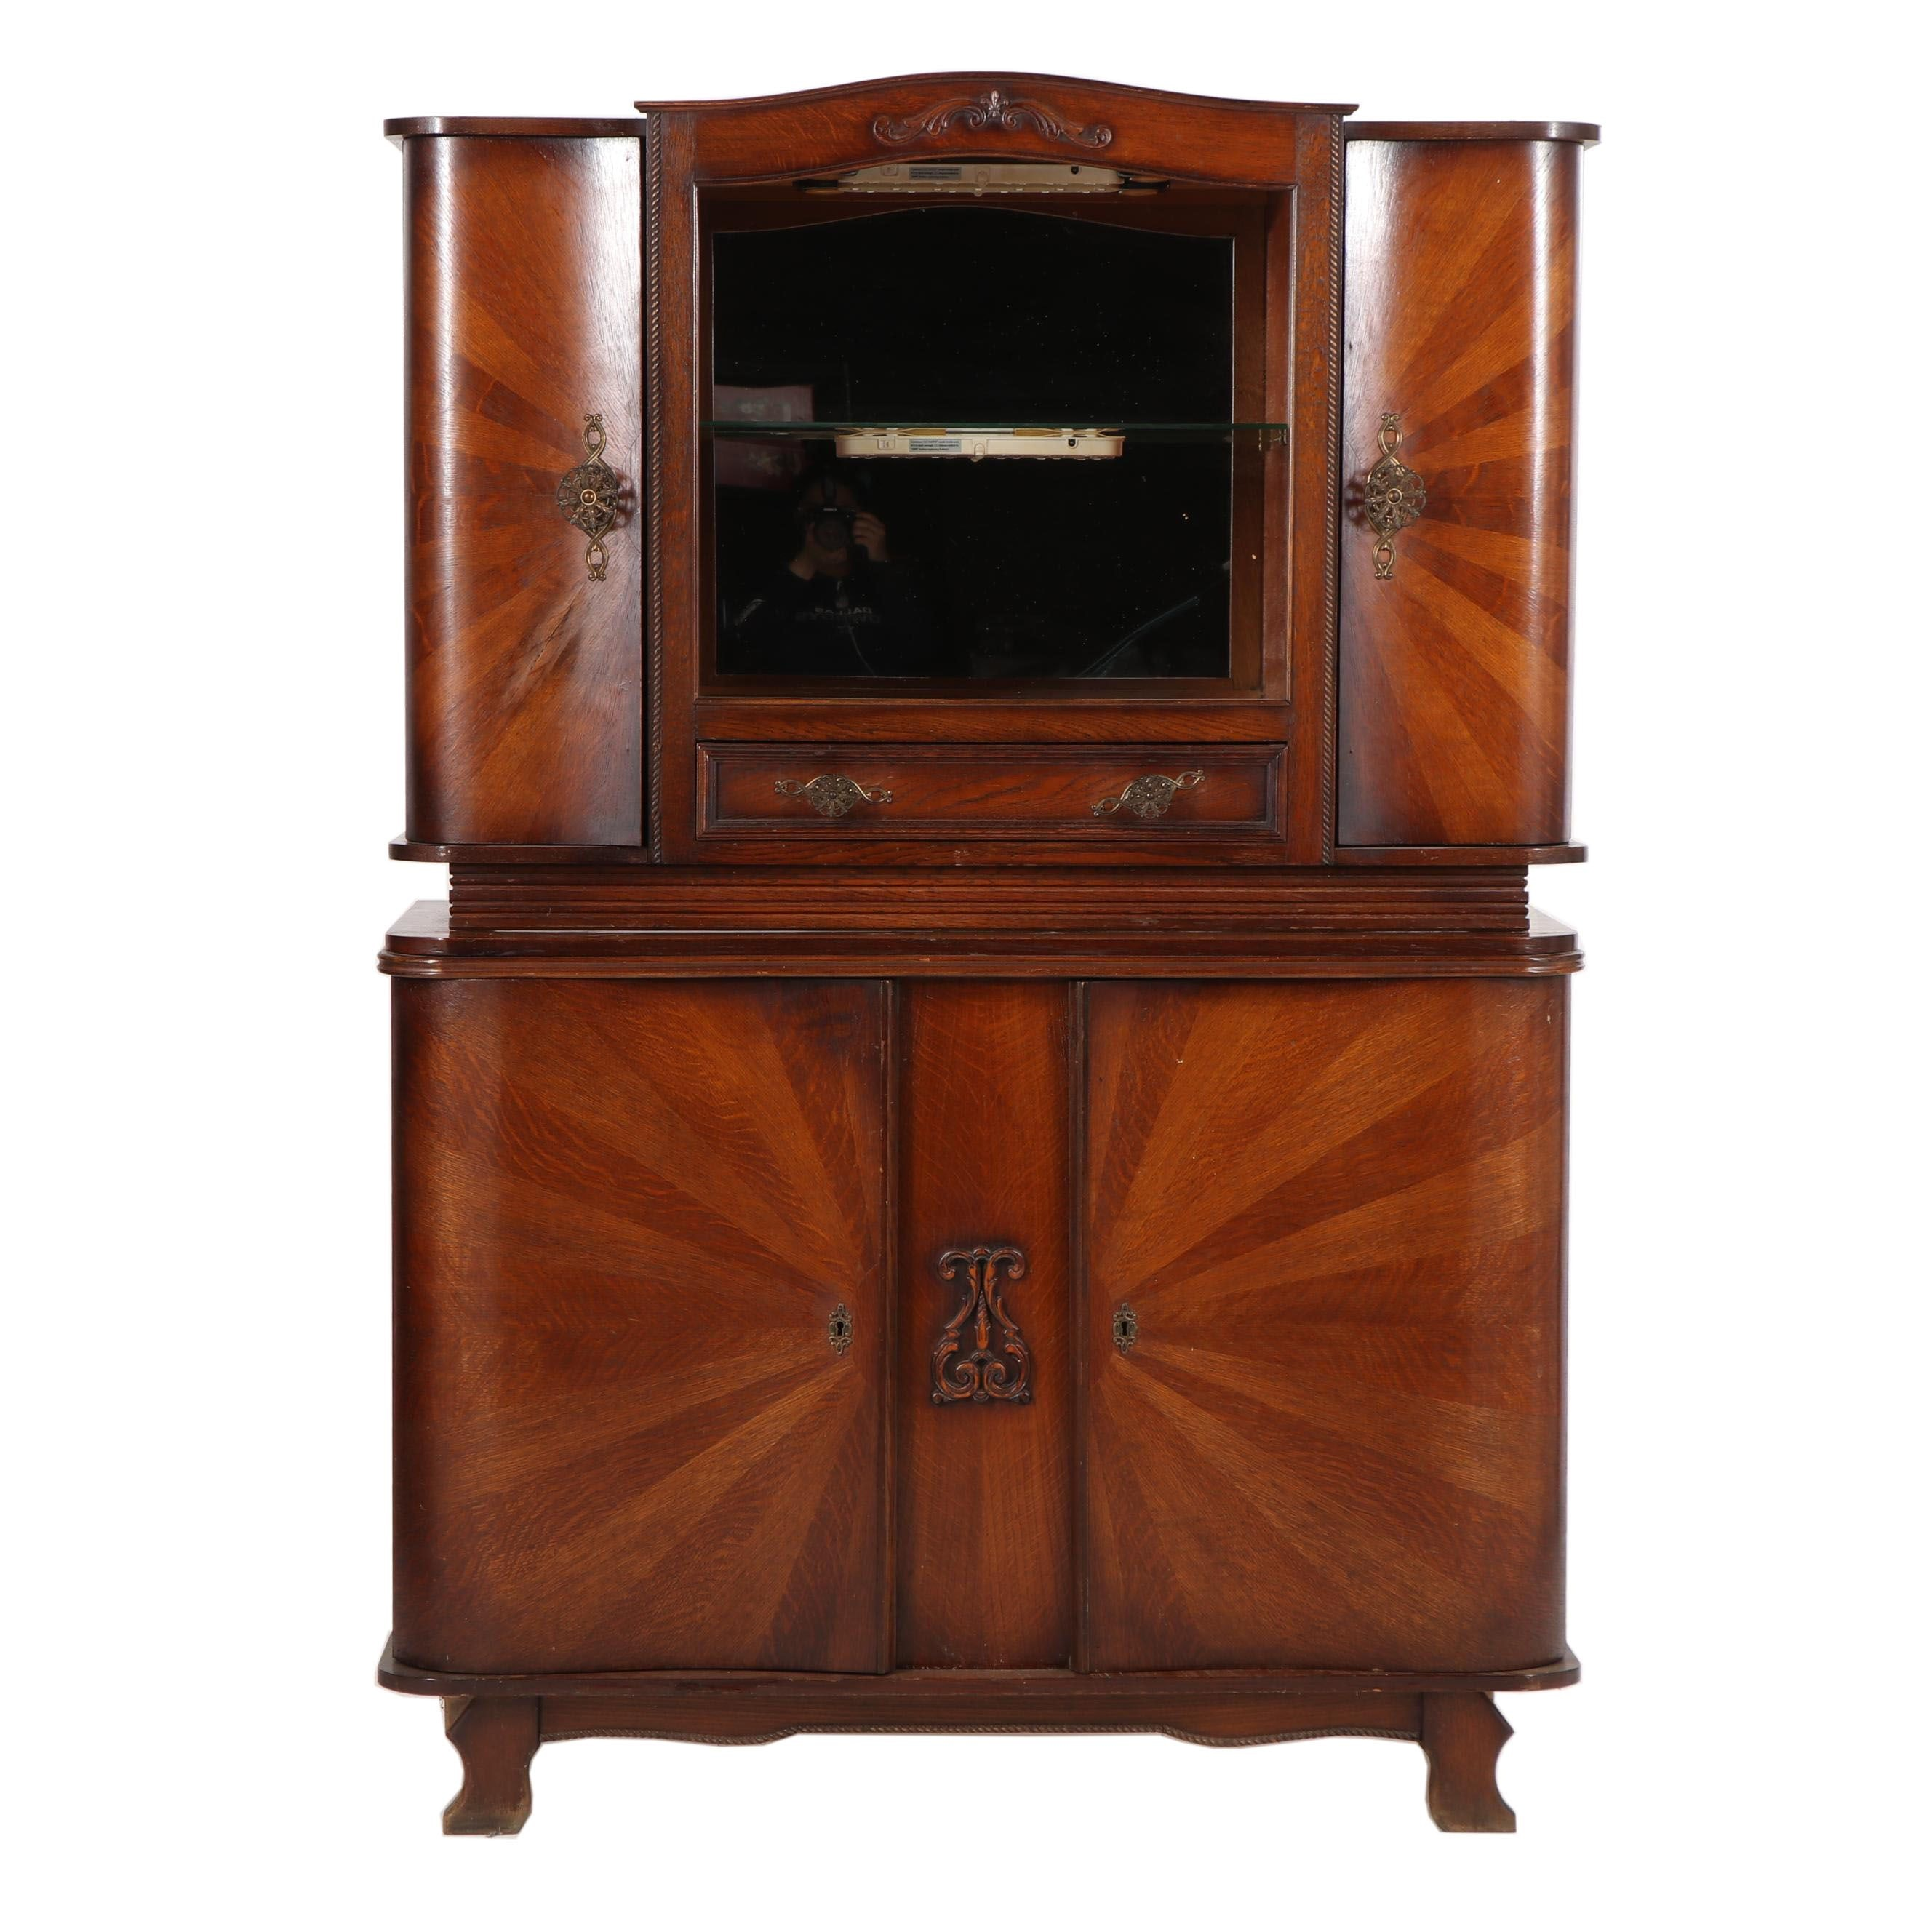 Late Victorian Style Oak Starburst Veneer China Cabinet with Mirror, 20th Cent.